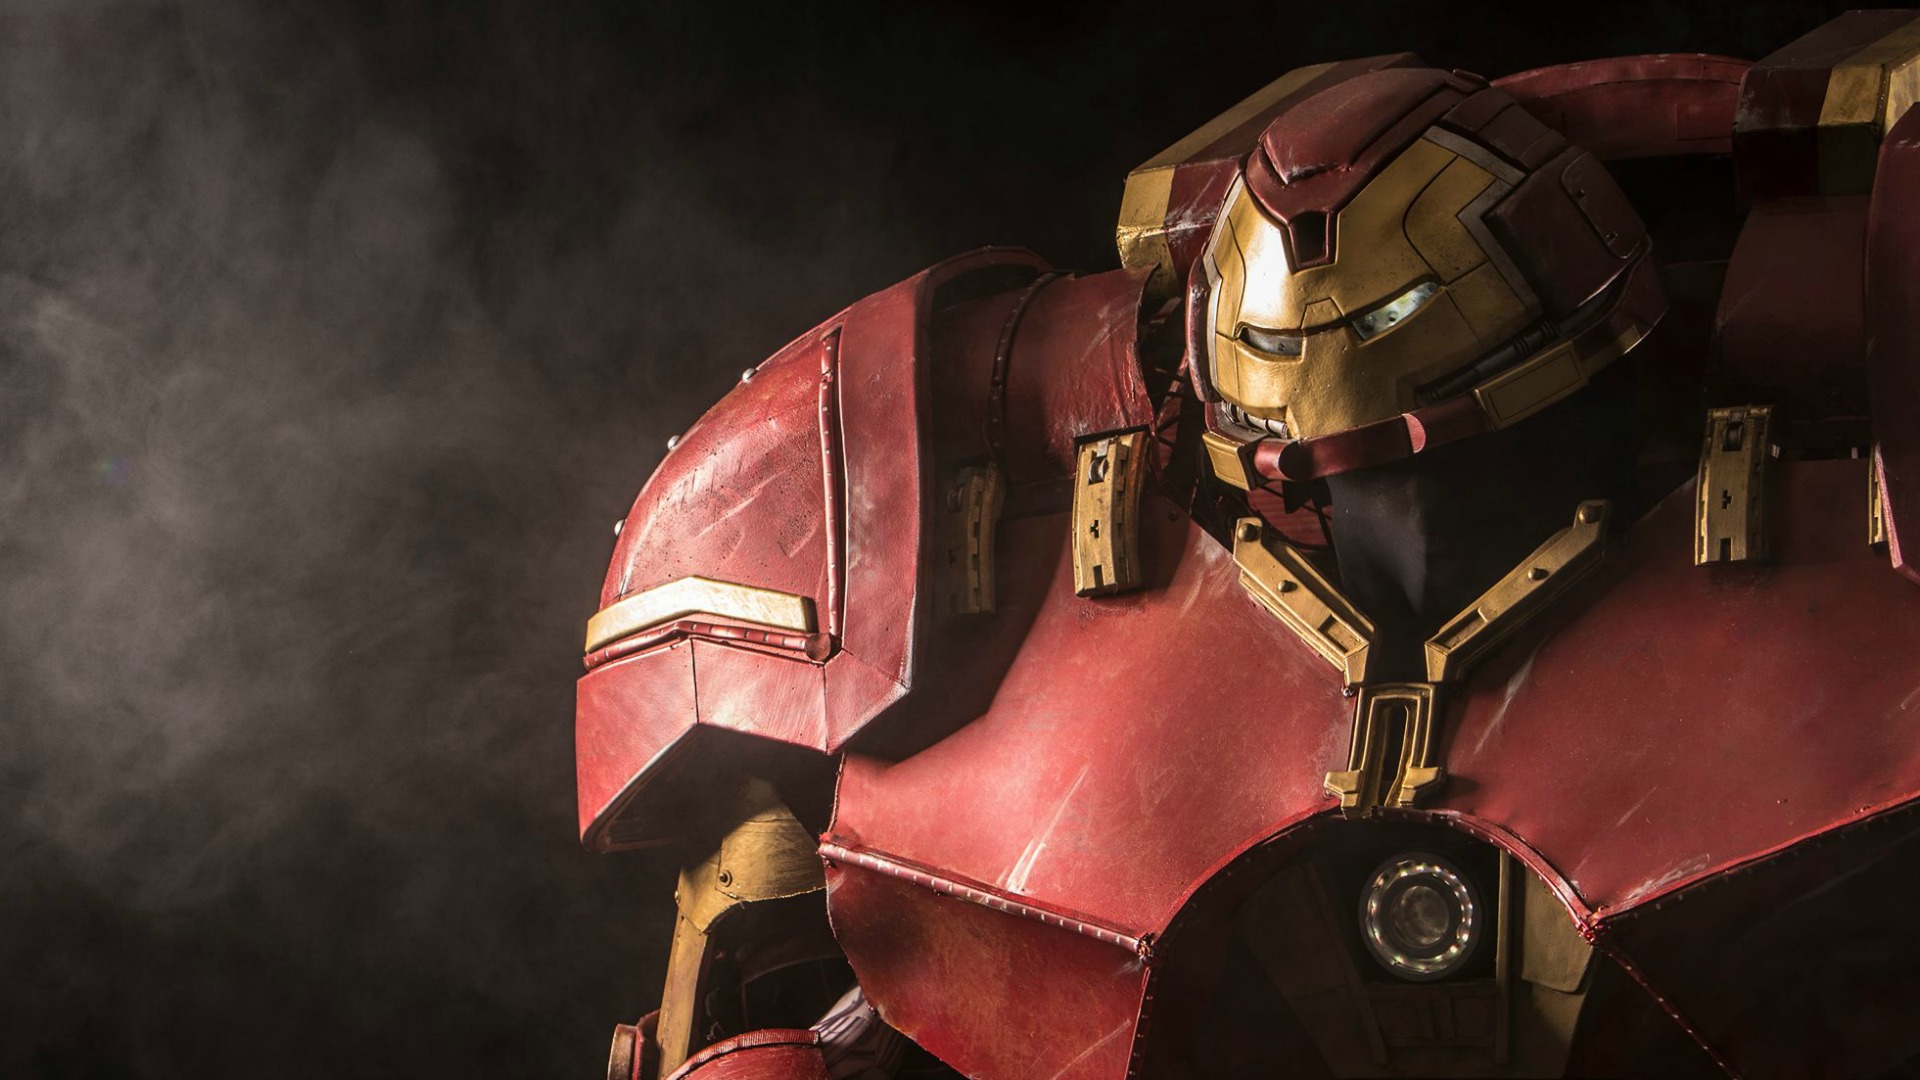 This DIY Hulkbuster Suit Amazes All Who Gaze Upon It Space 1920x1080